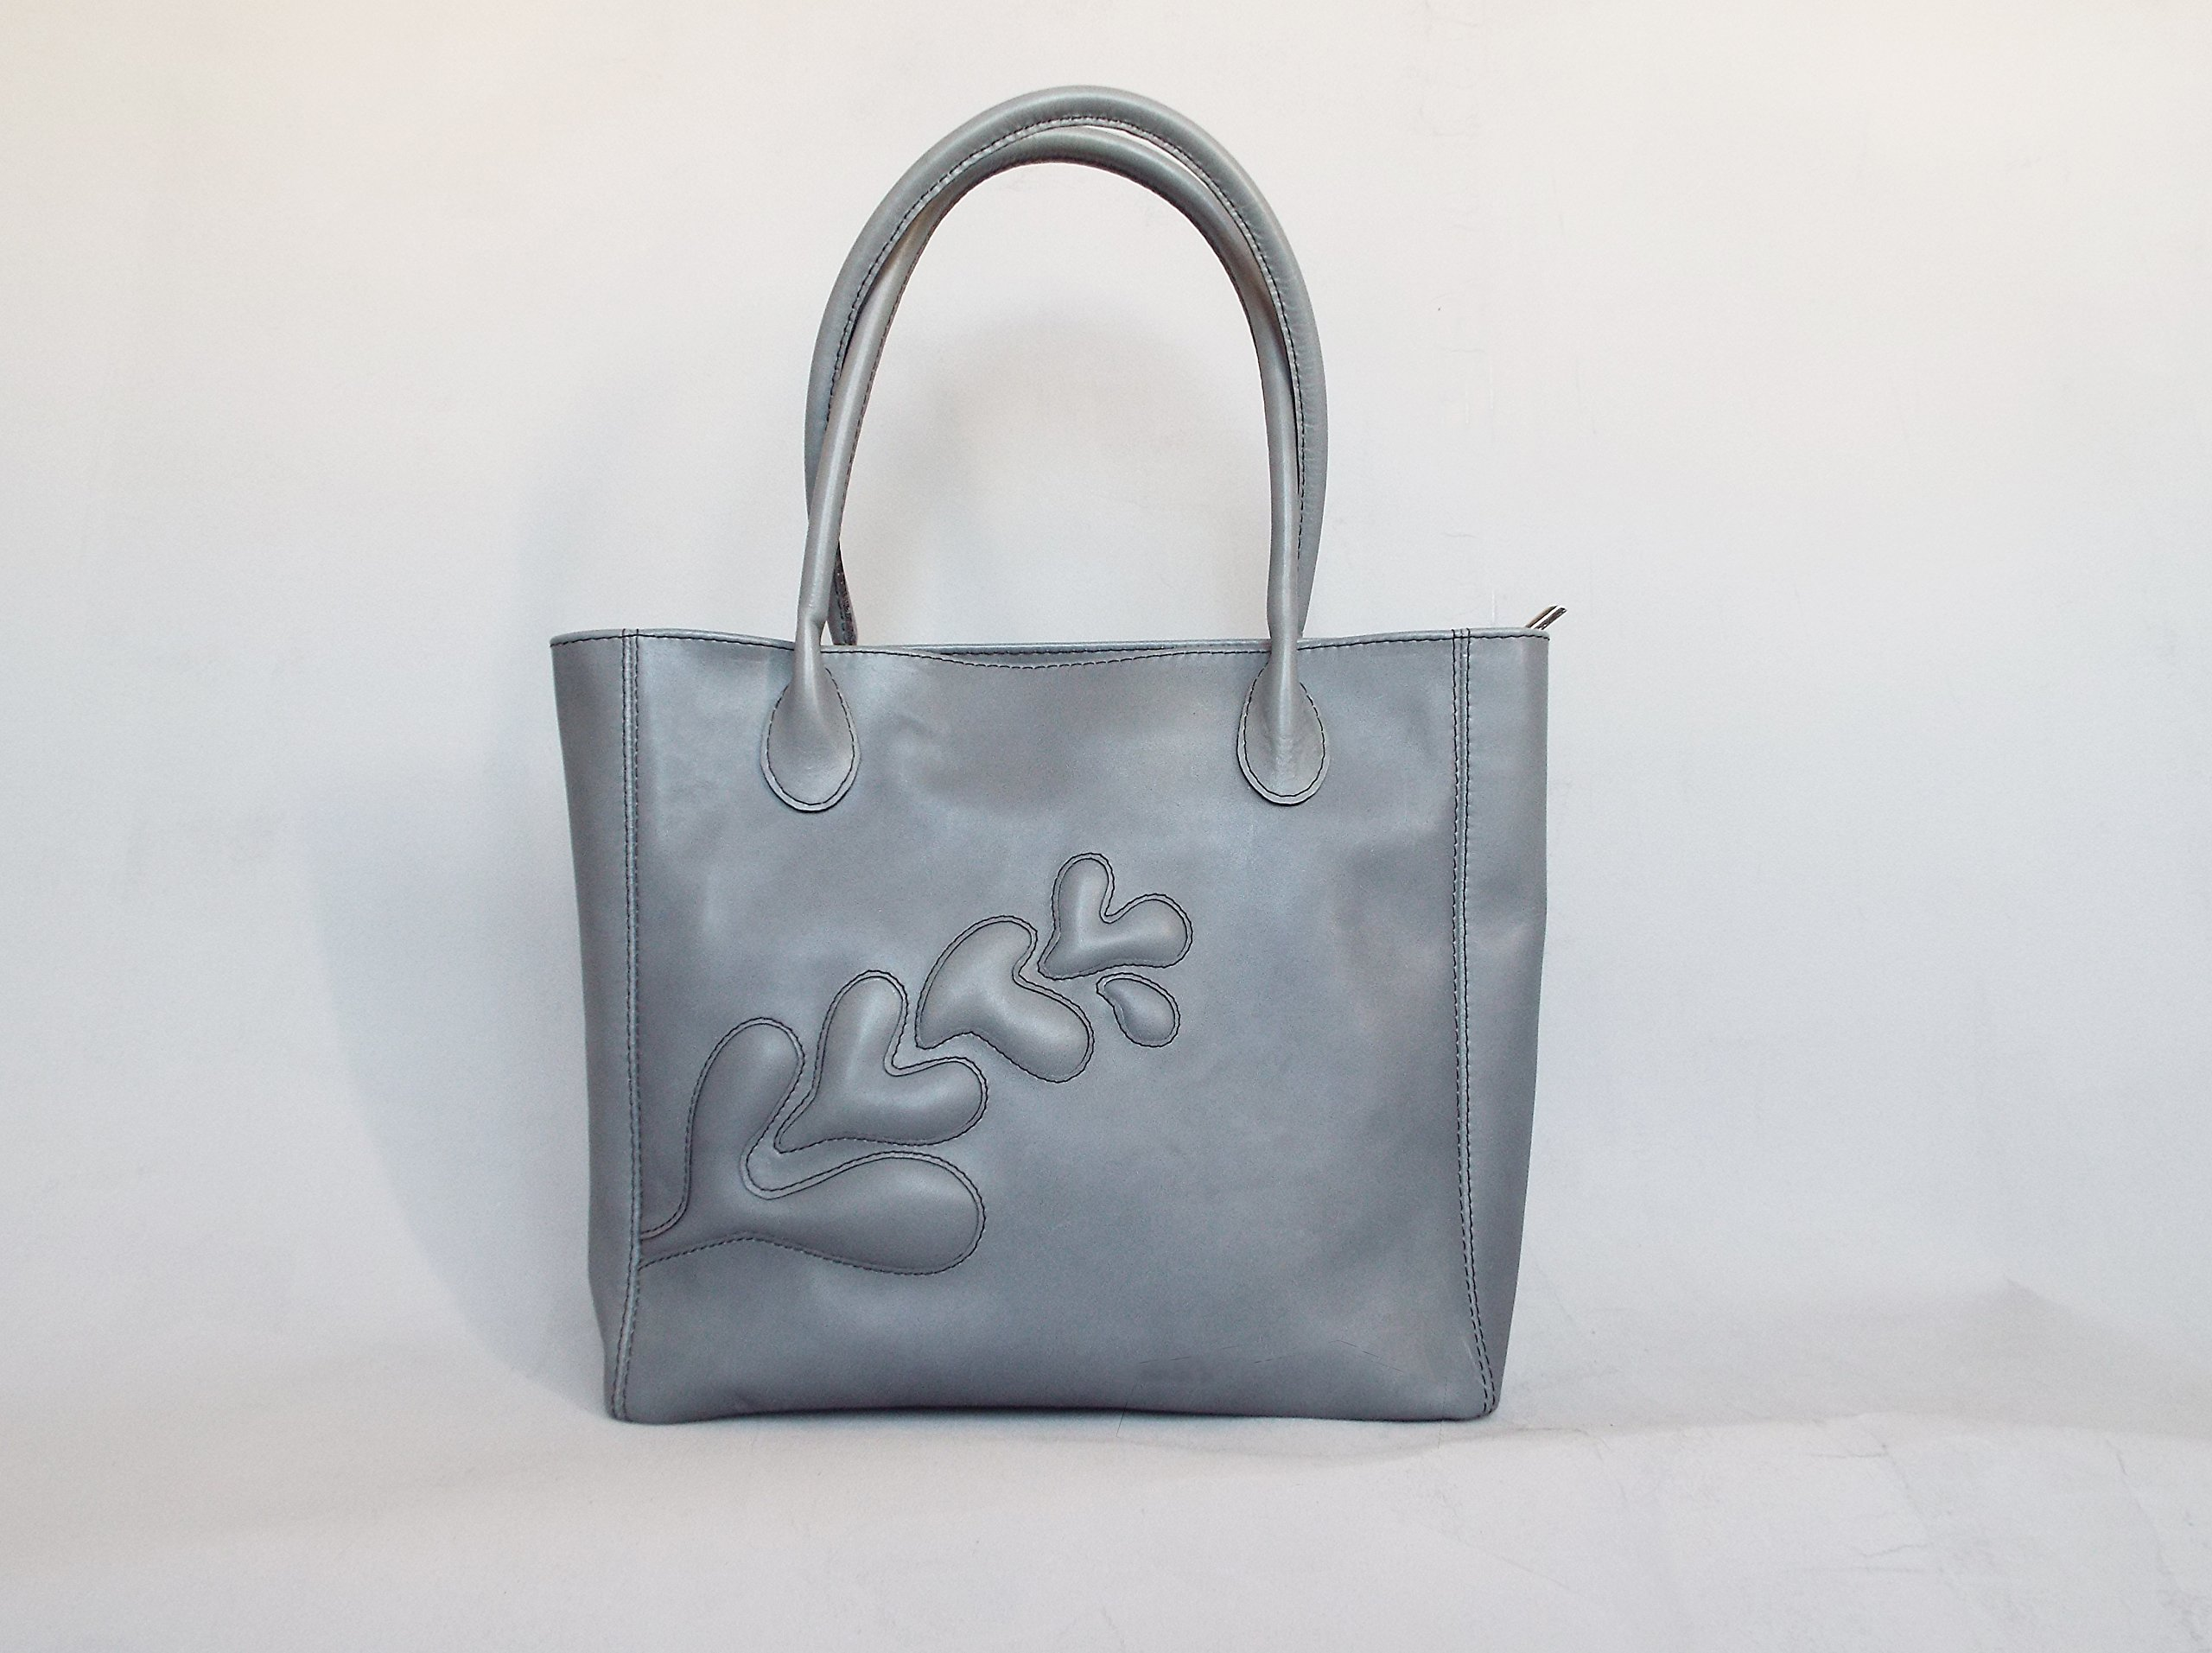 Leather tote bag. Grey leather bag. Applique leather bag. Gray shoulder bag leather. Gray leather tote, Leather handbag. Embossed leather bag.